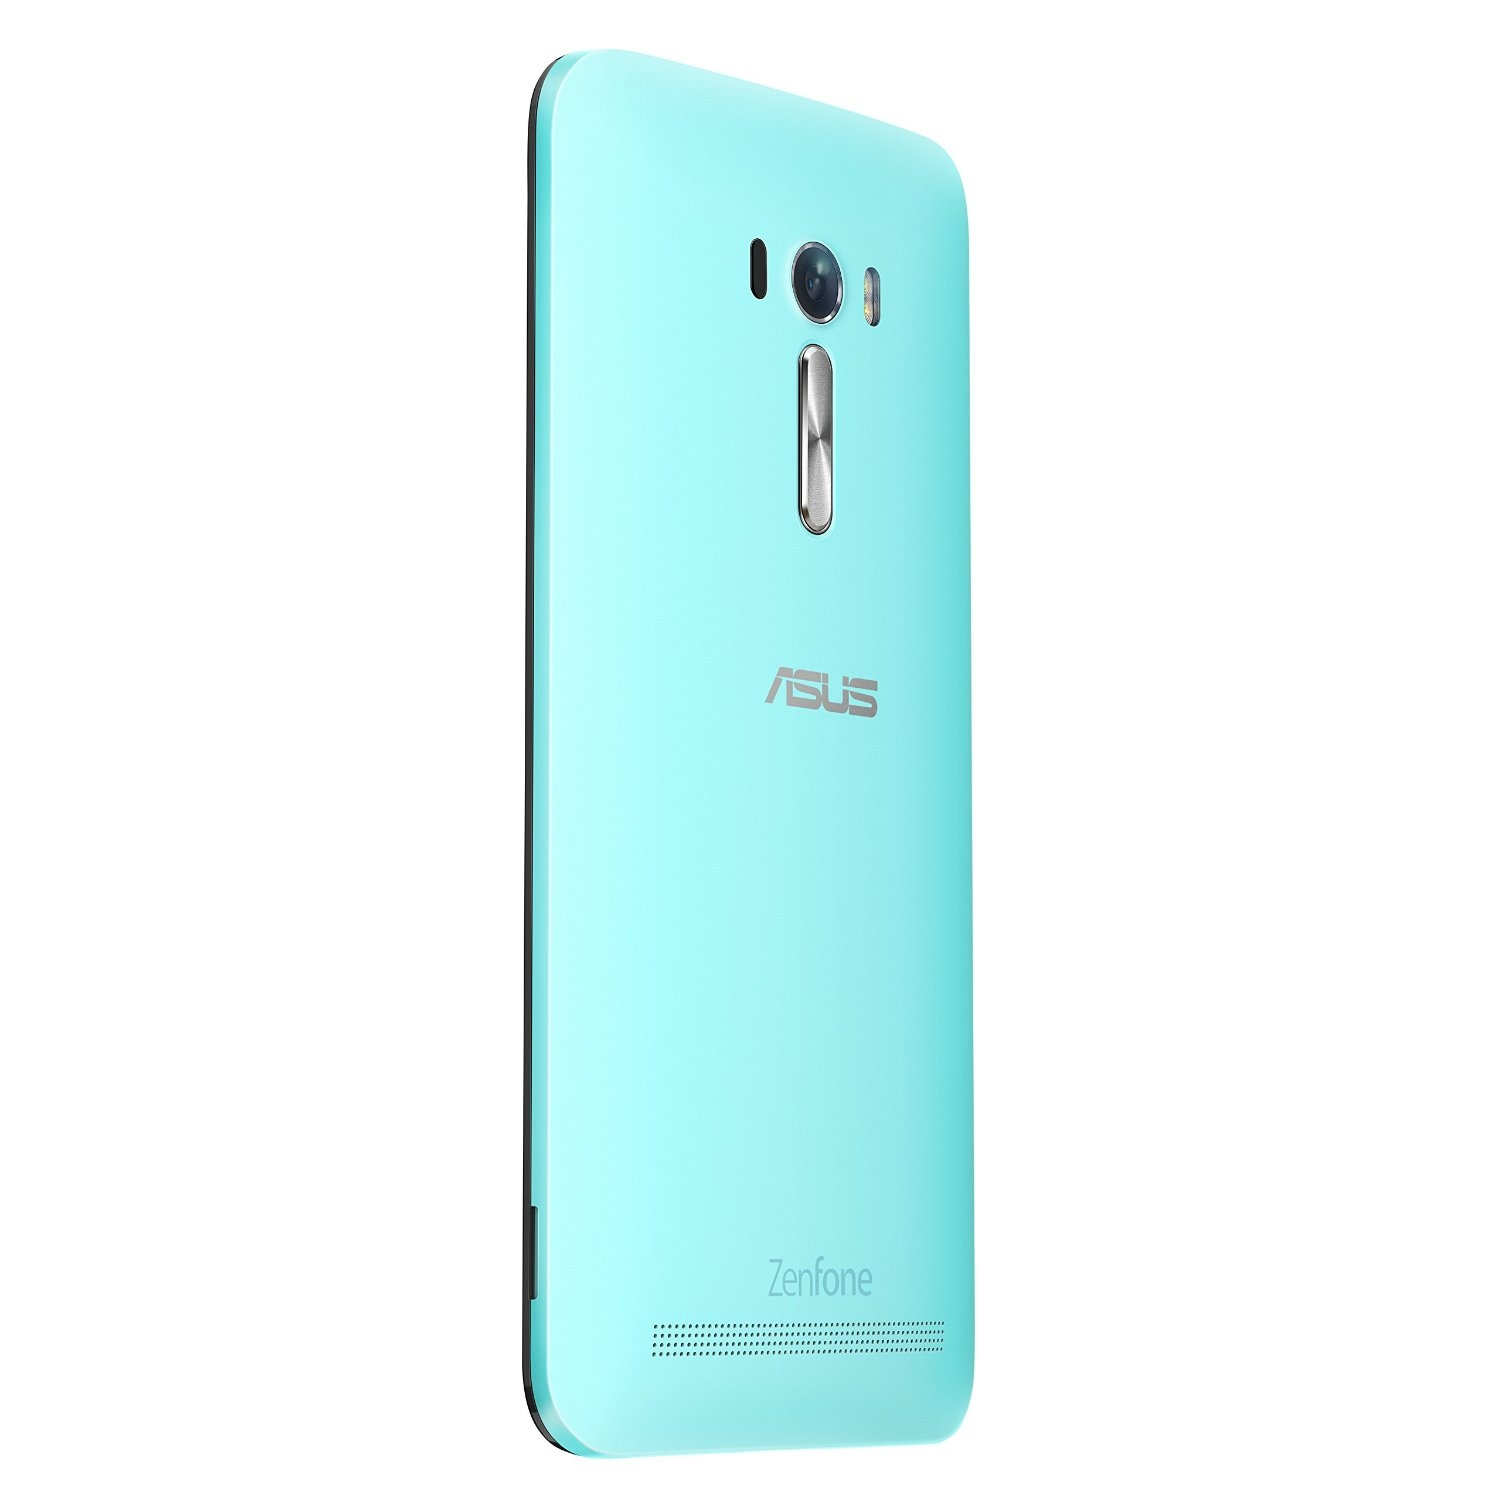 asus zenfone 2 selfie zd551kl aqua blue high resolution quality images. Black Bedroom Furniture Sets. Home Design Ideas